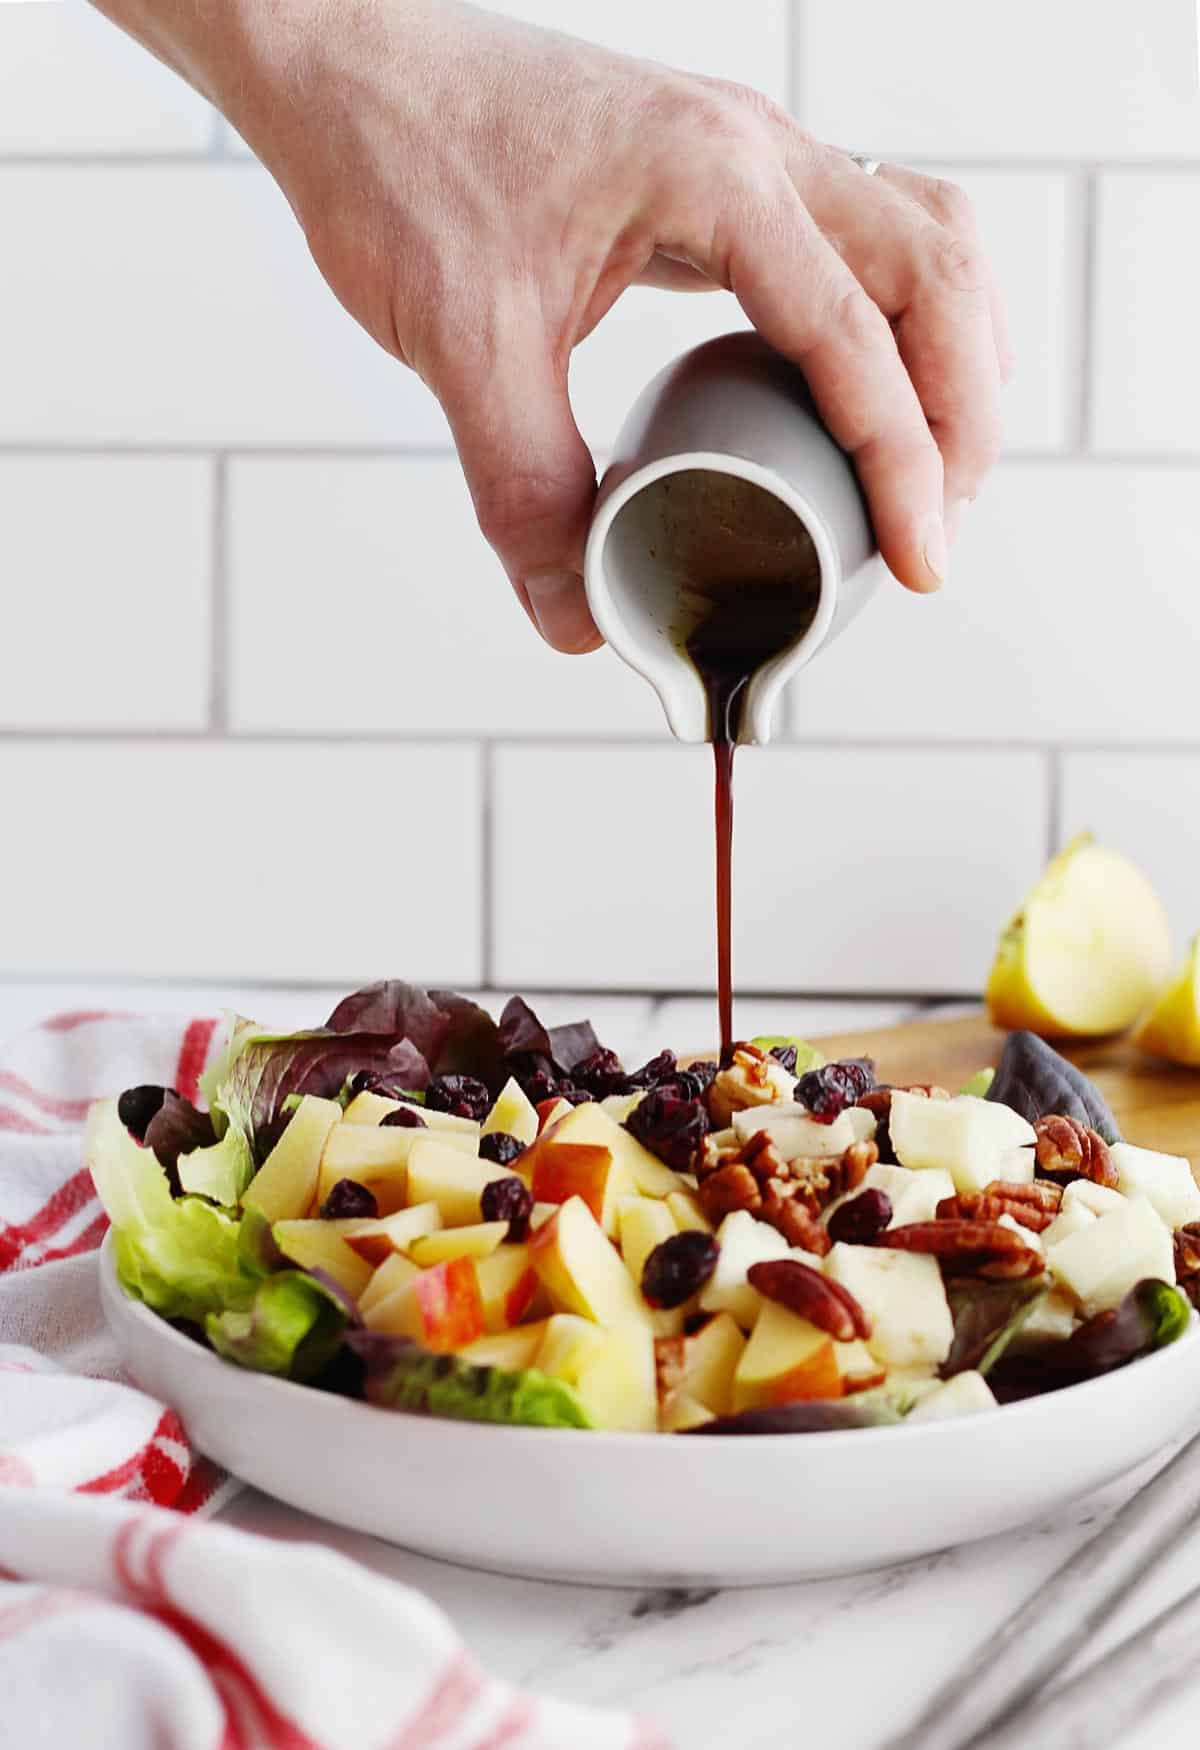 Fall salad with balsamic vinaigrette being poured on